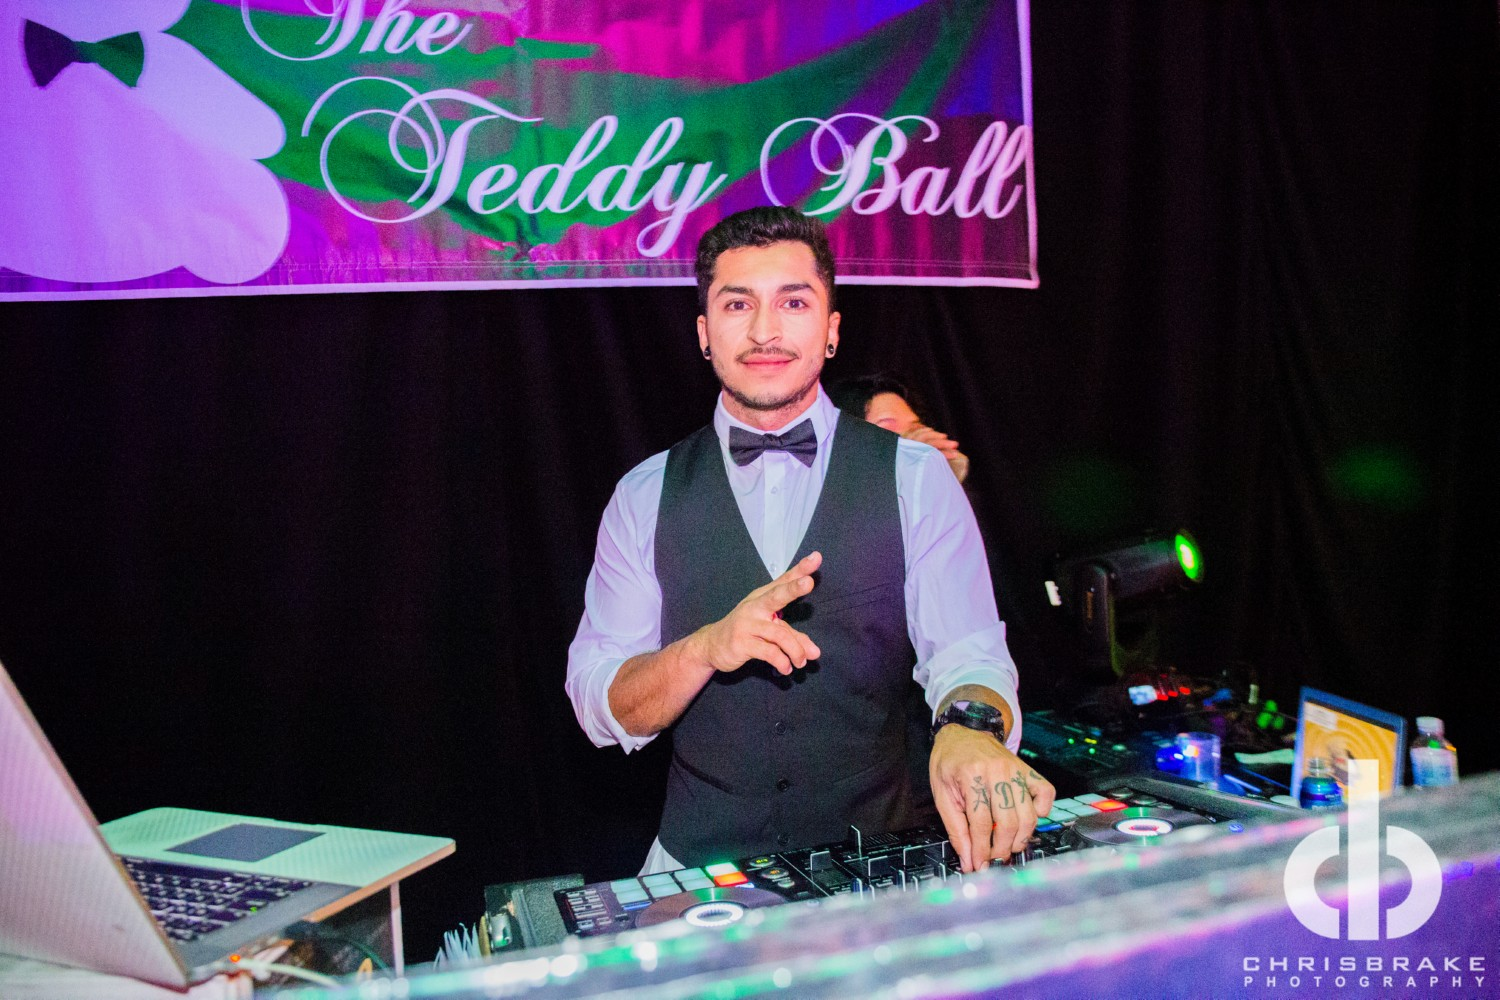 Chris_Brake_Photography_2016_Teddy_Ball - 156.jpg